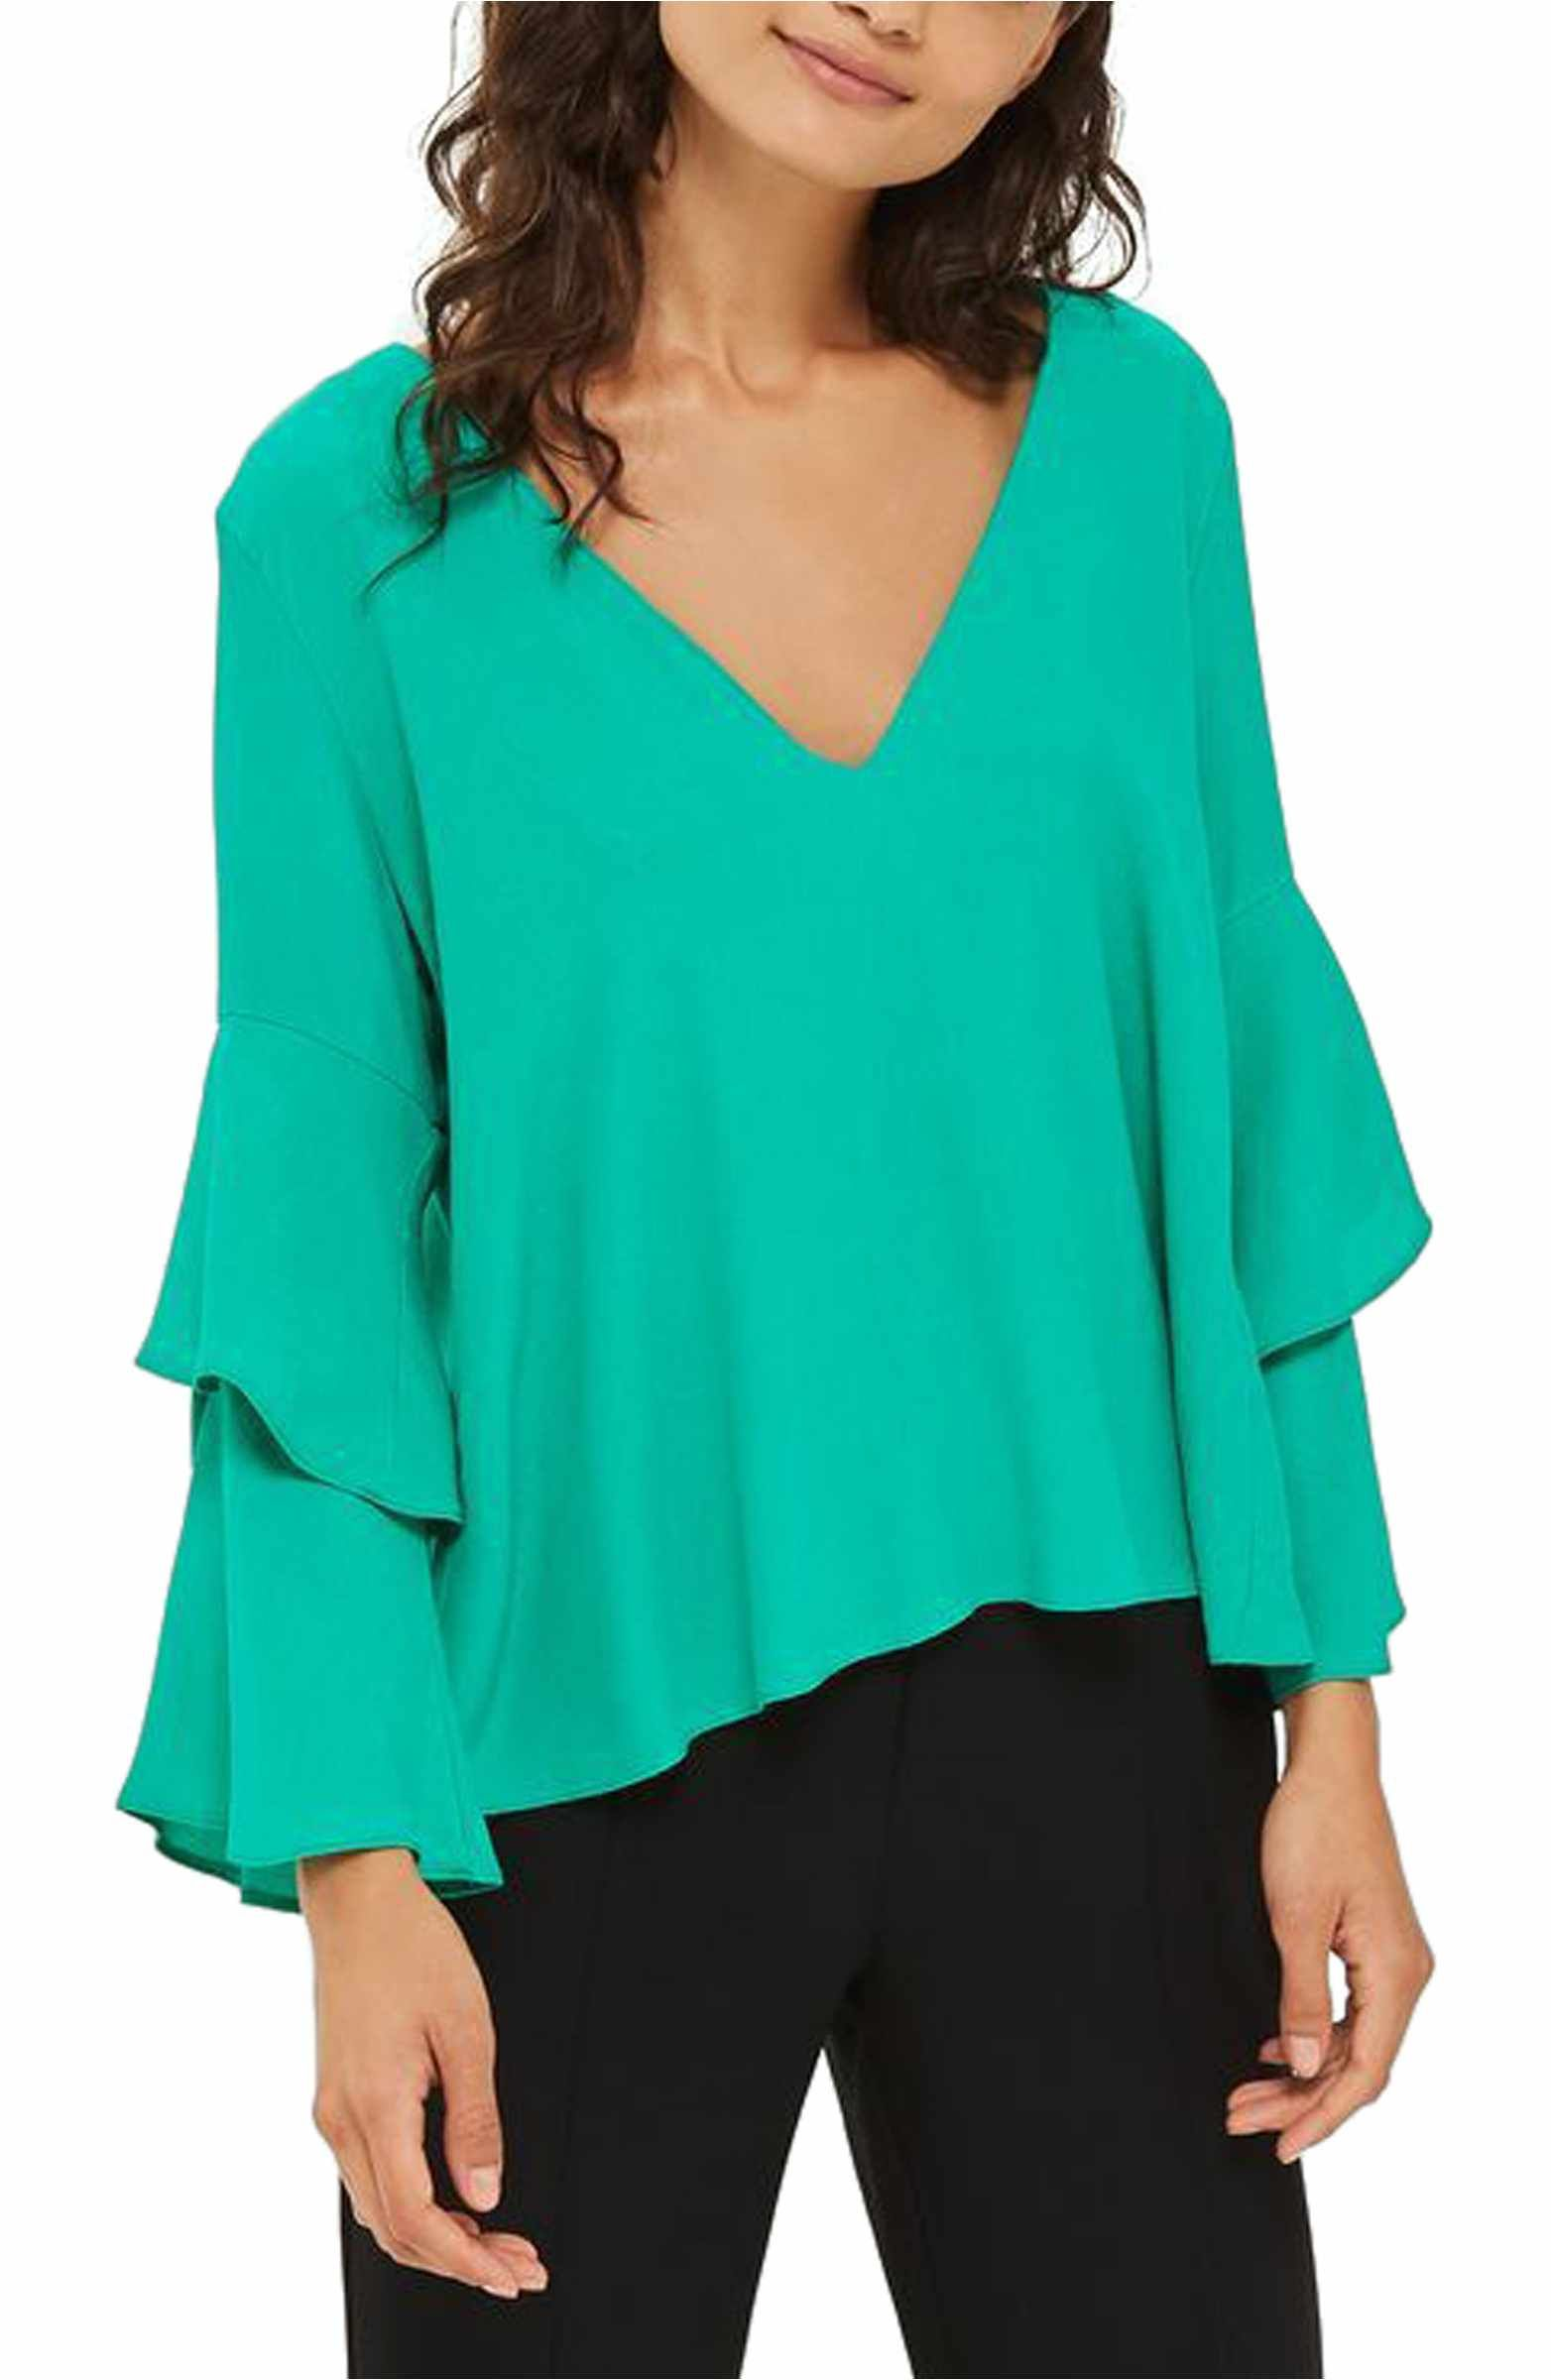 279f29f88a0a9 Main Image - Topshop Double Sleeve Layer Top